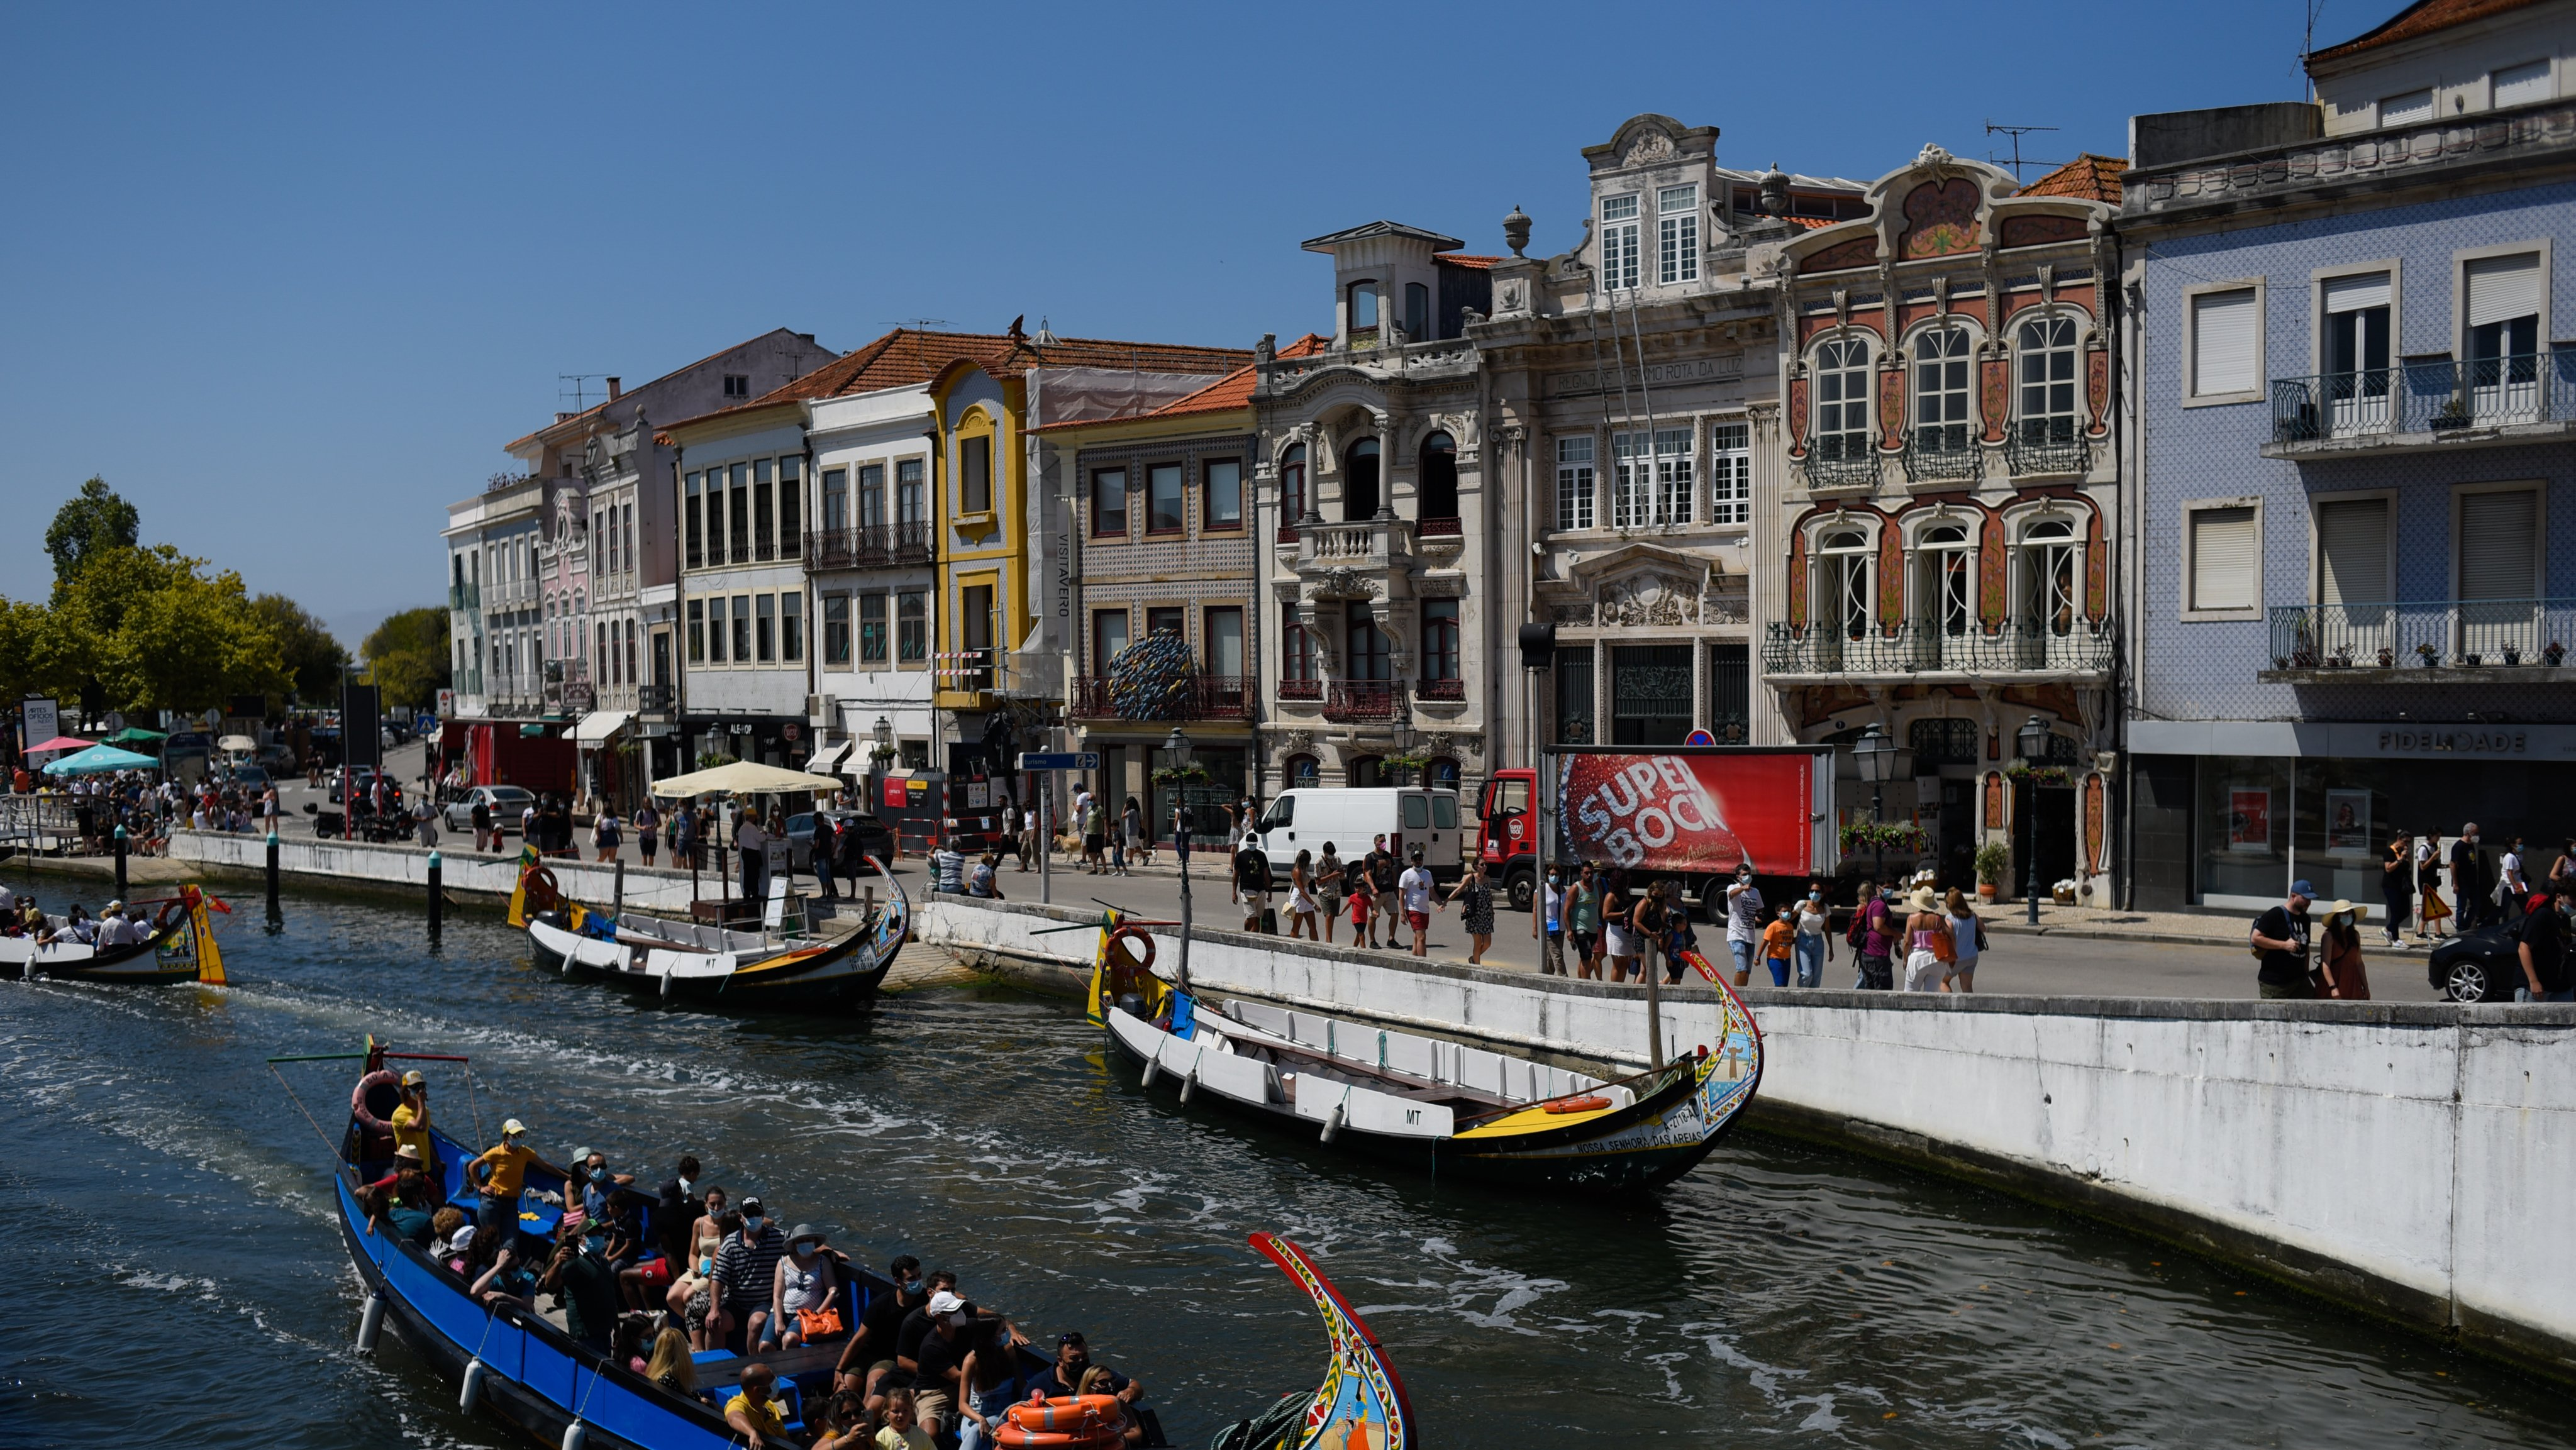 Tourism In Portugal During The Coronavirus Pandemic